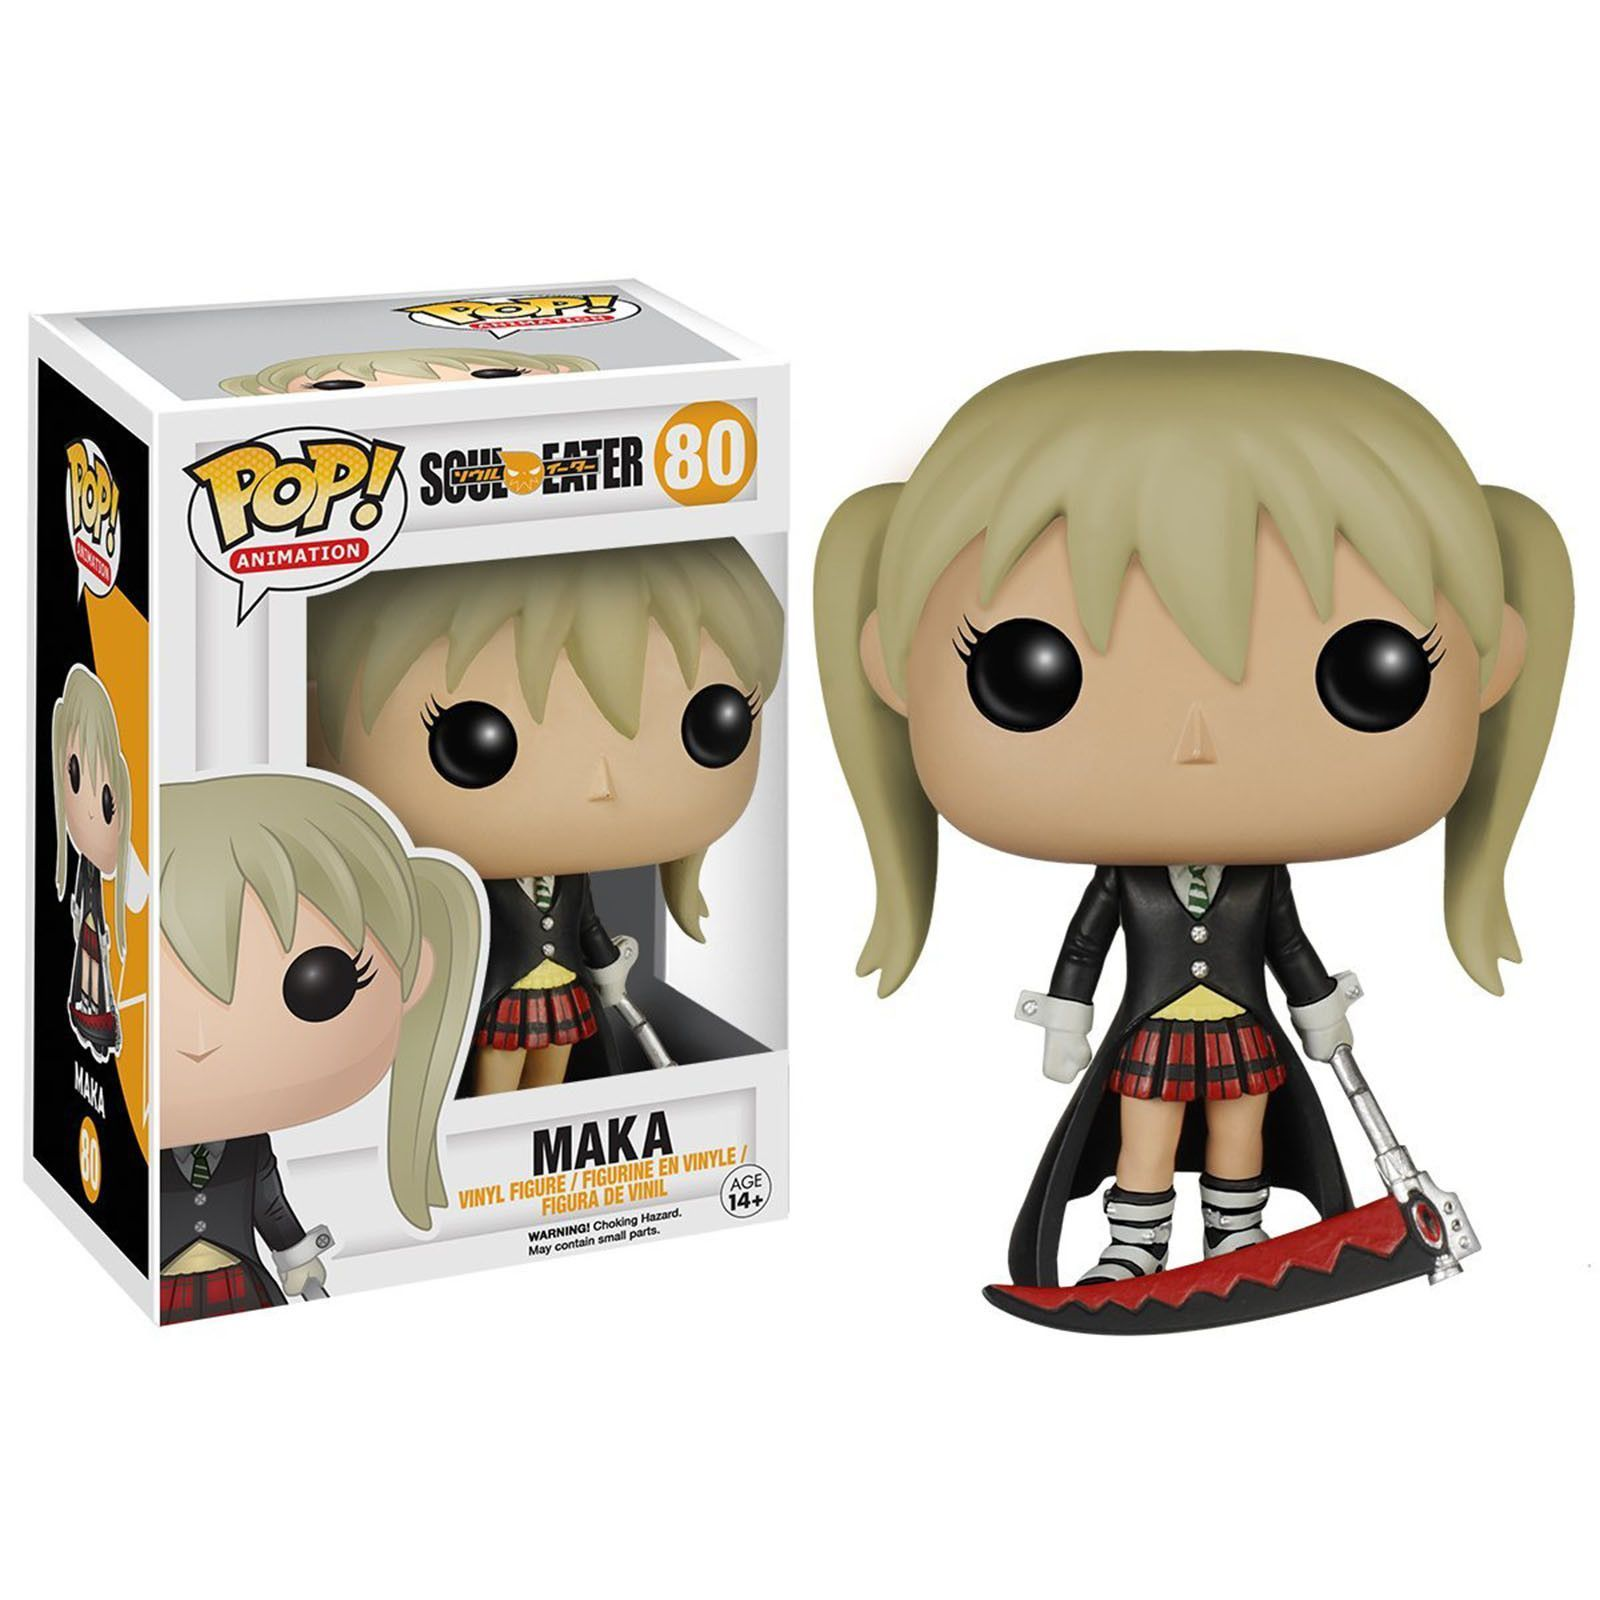 This is a Soul Eater Maka POP Vinyl Figure that is